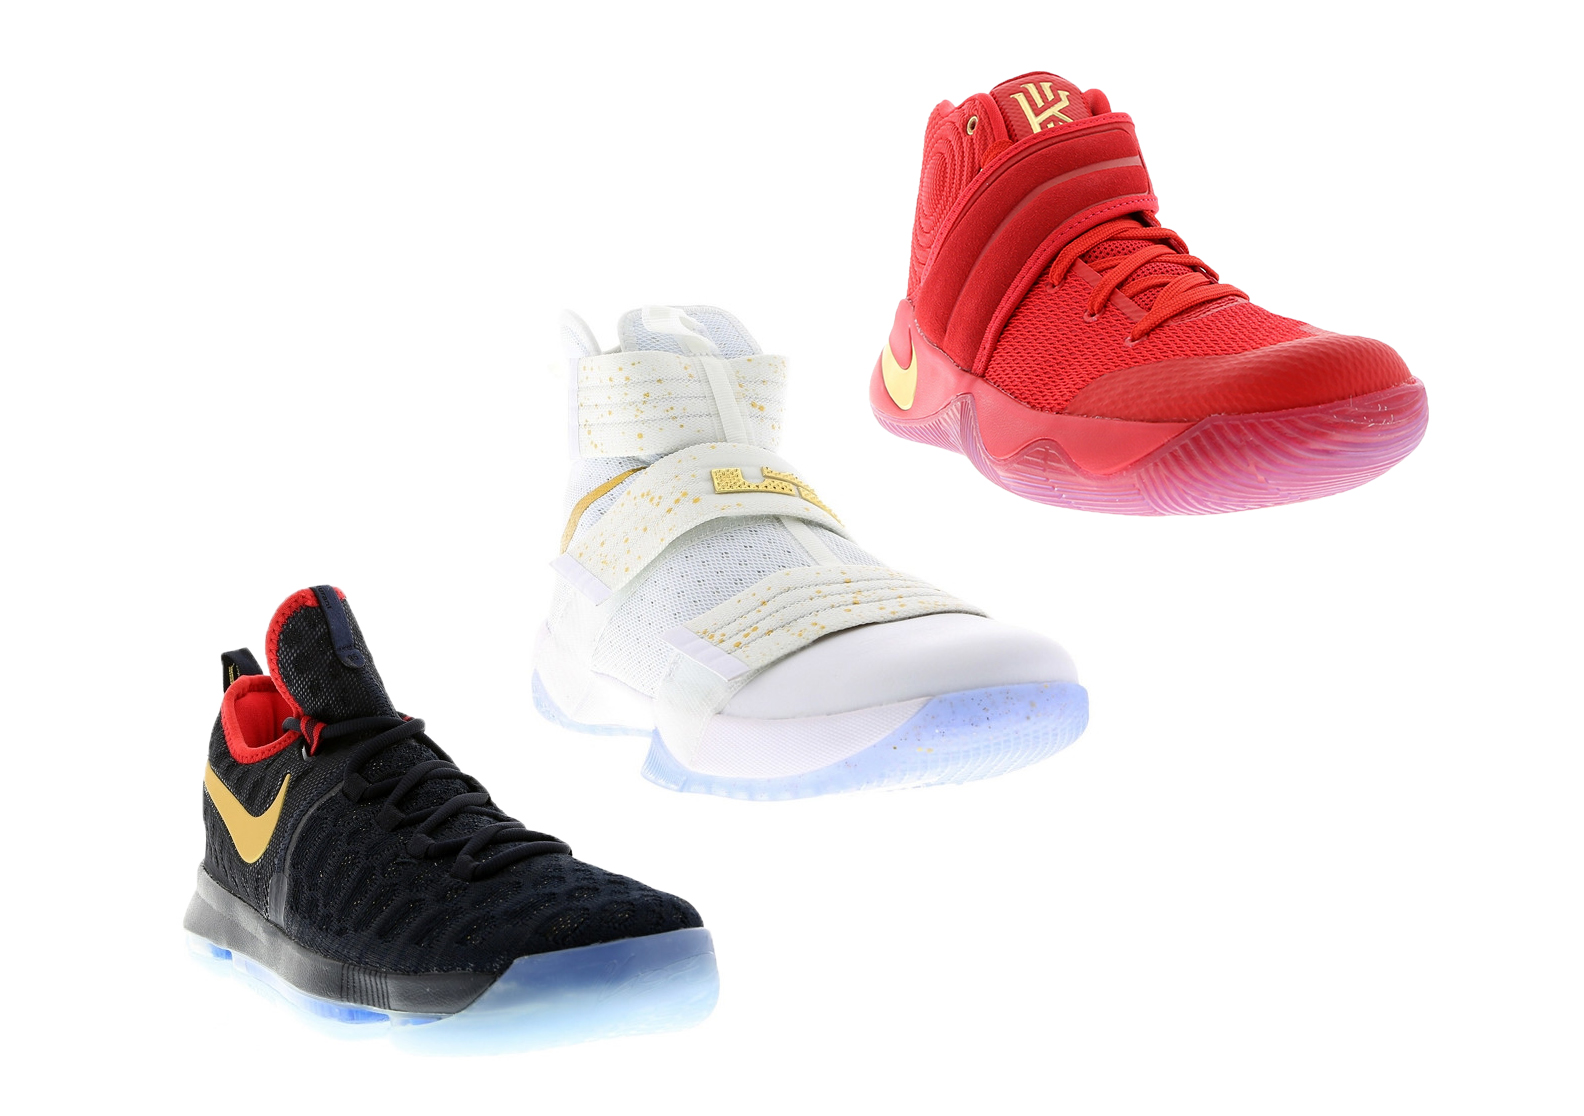 lebron-soldier-10-gold-medal-03_afp2nc copy